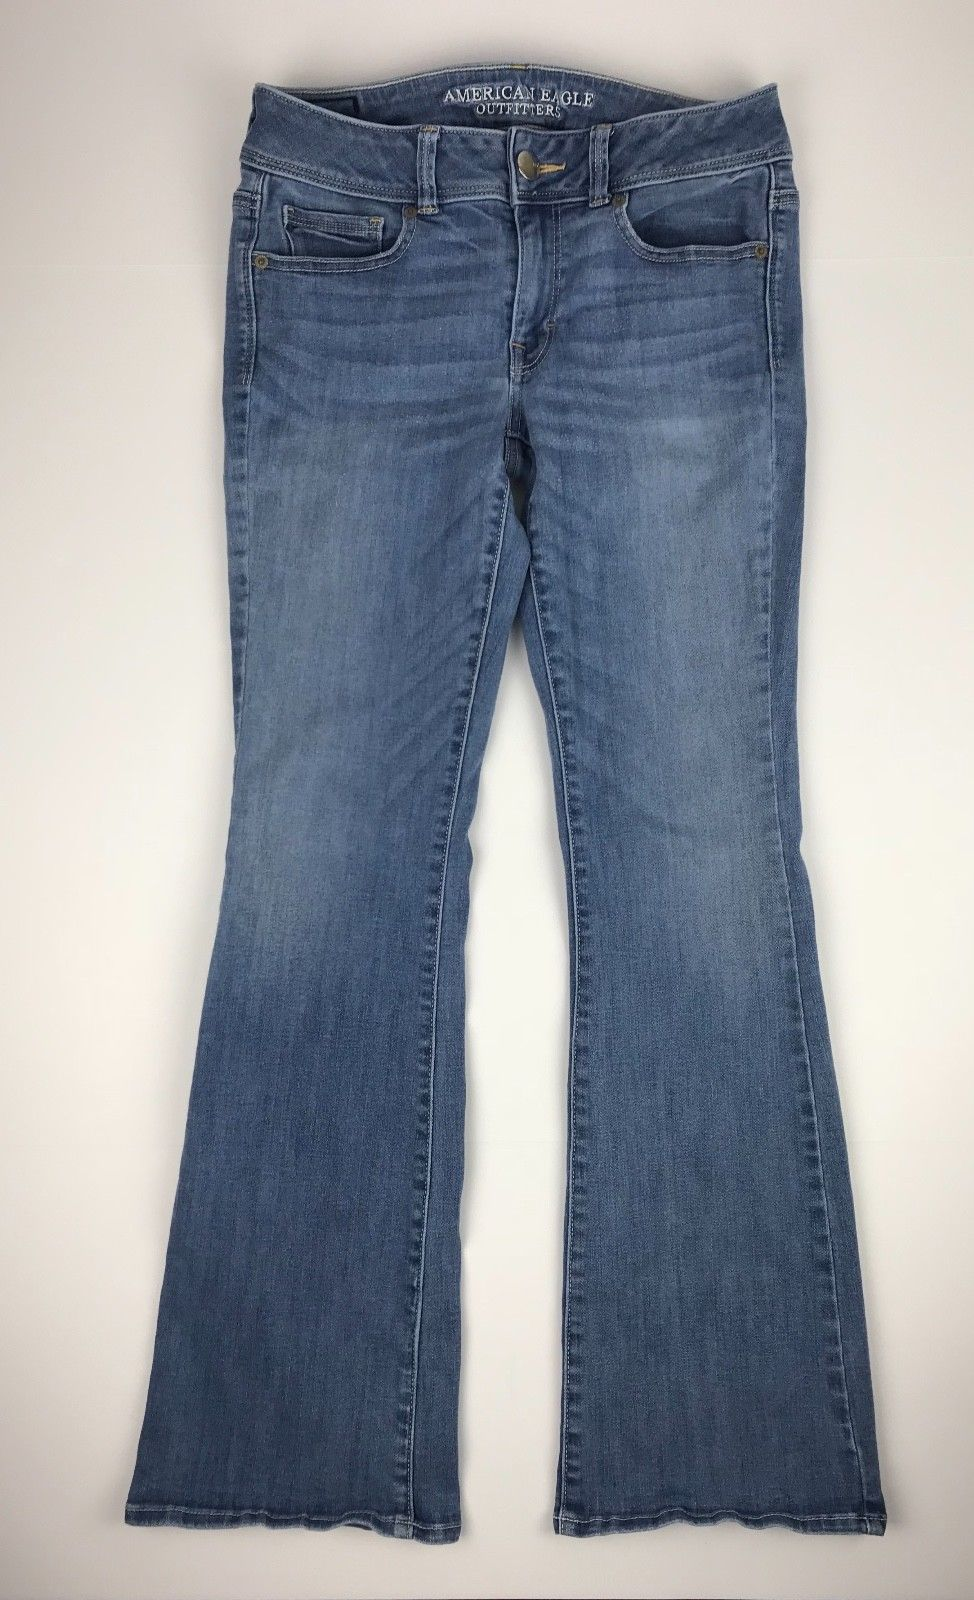 American Eagle Outfitters Super Stretch Kick Boot Denim Blue Jeans Women's 8R image 4